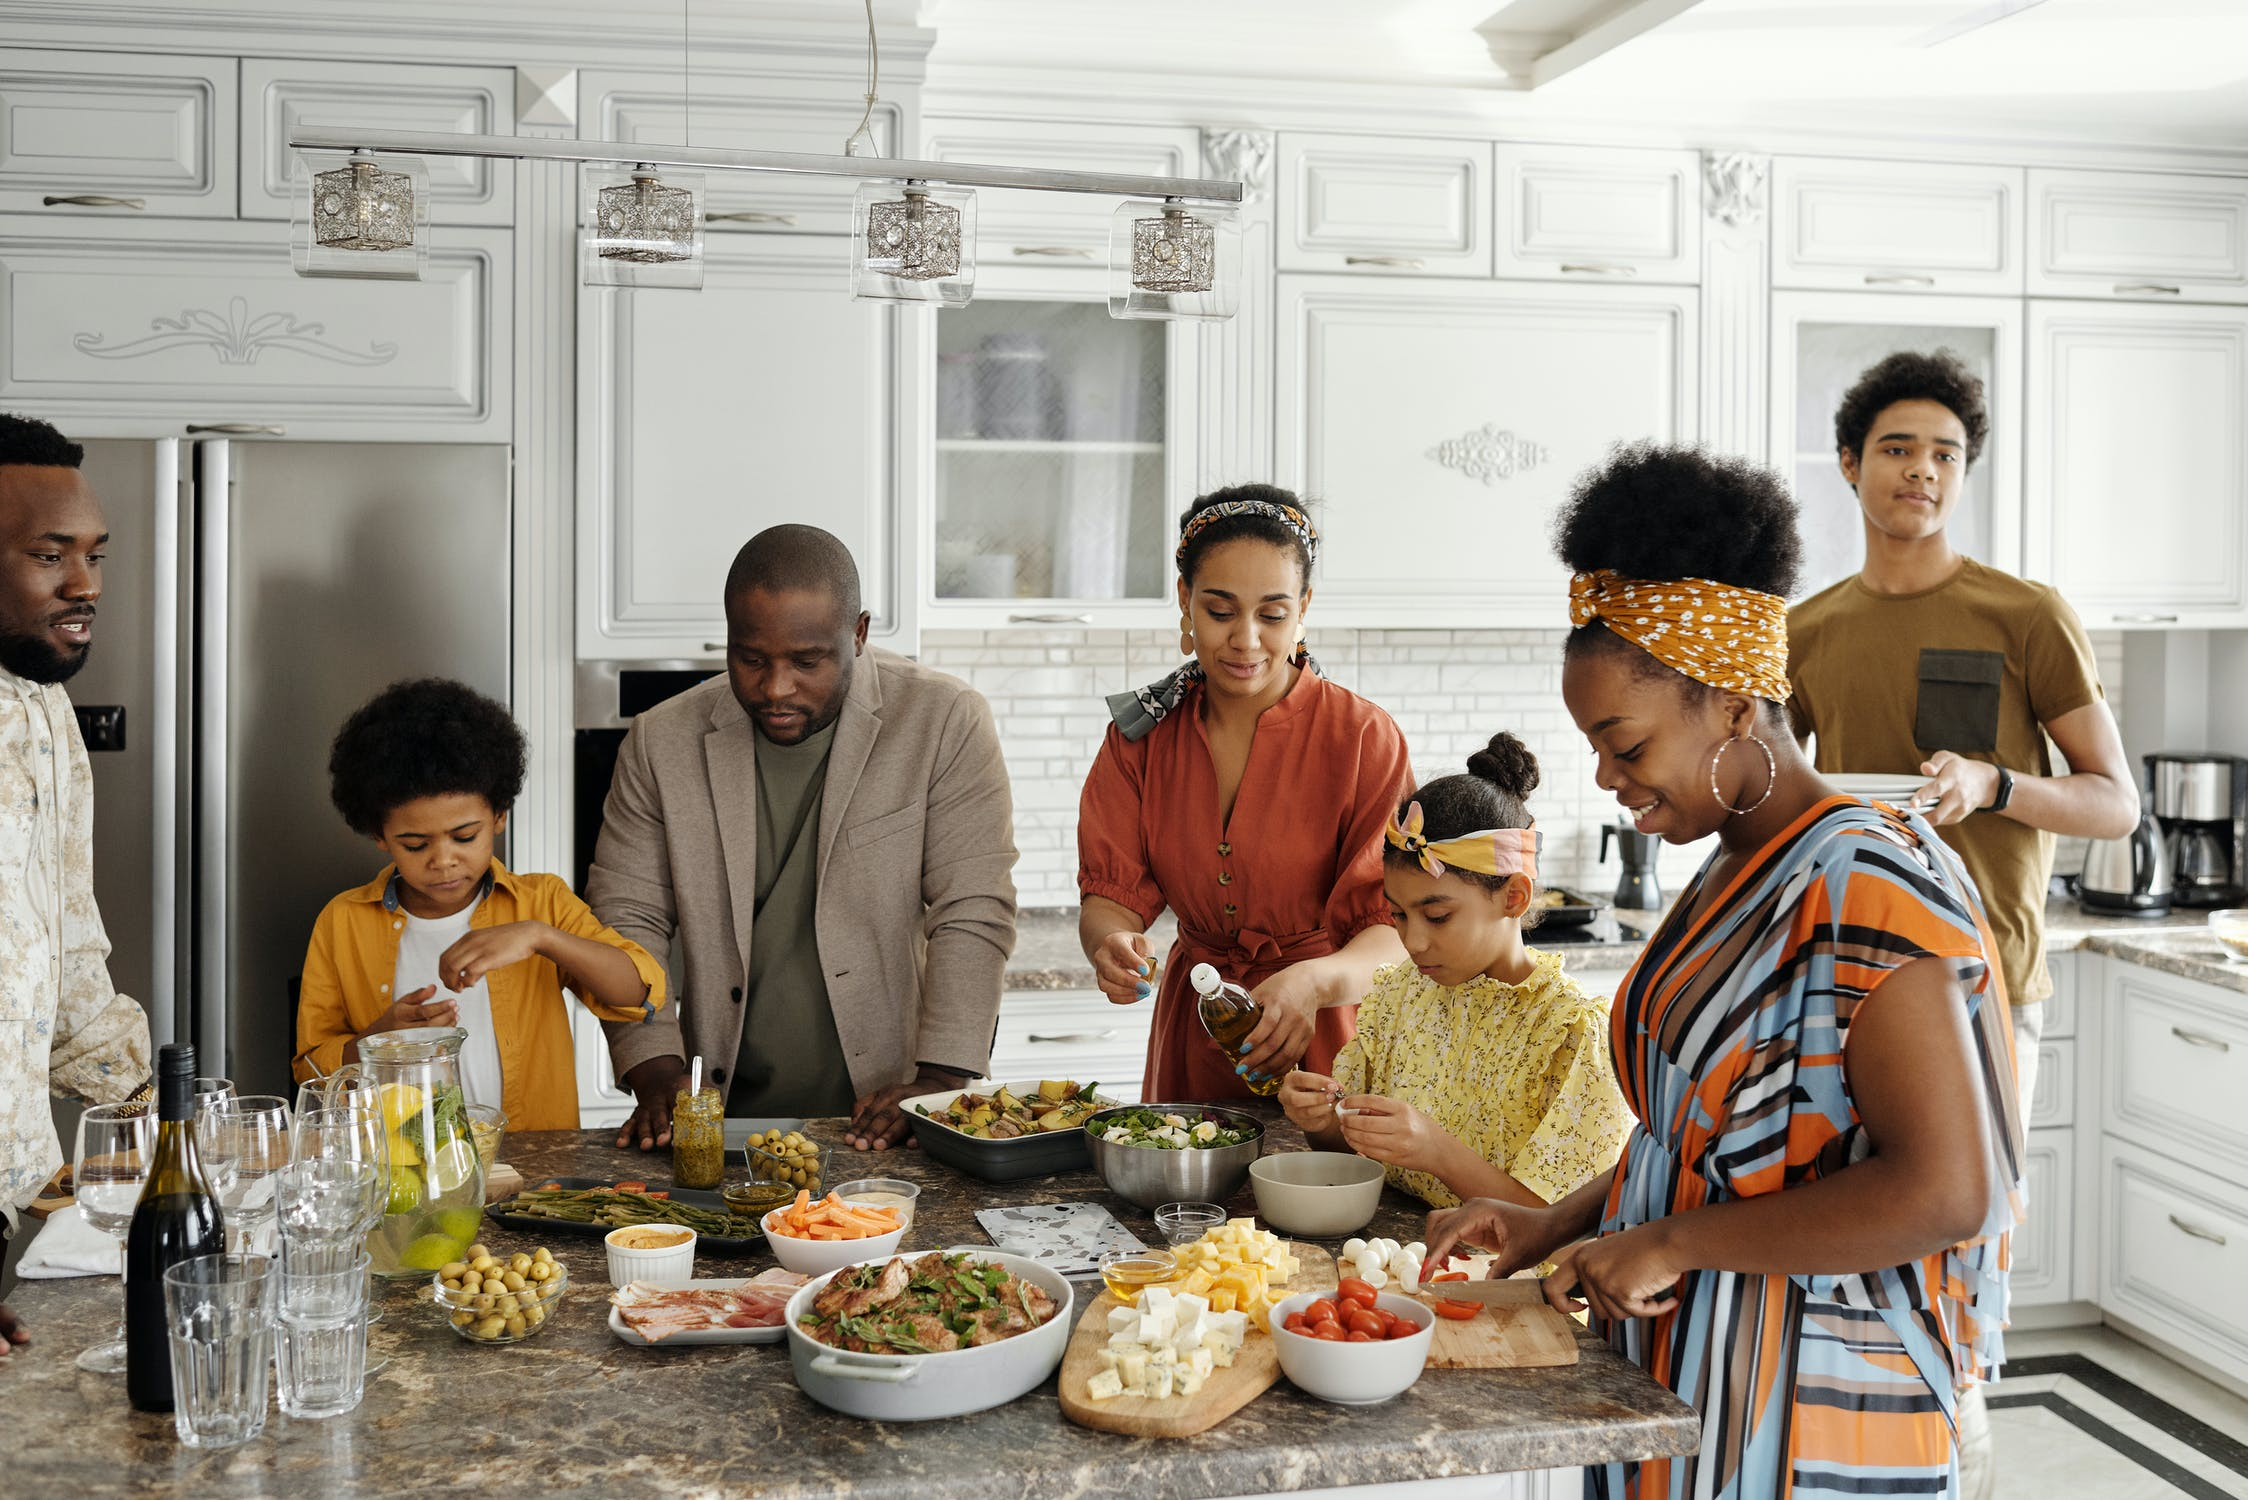 Family gathers around a kitchen island piled high with food.